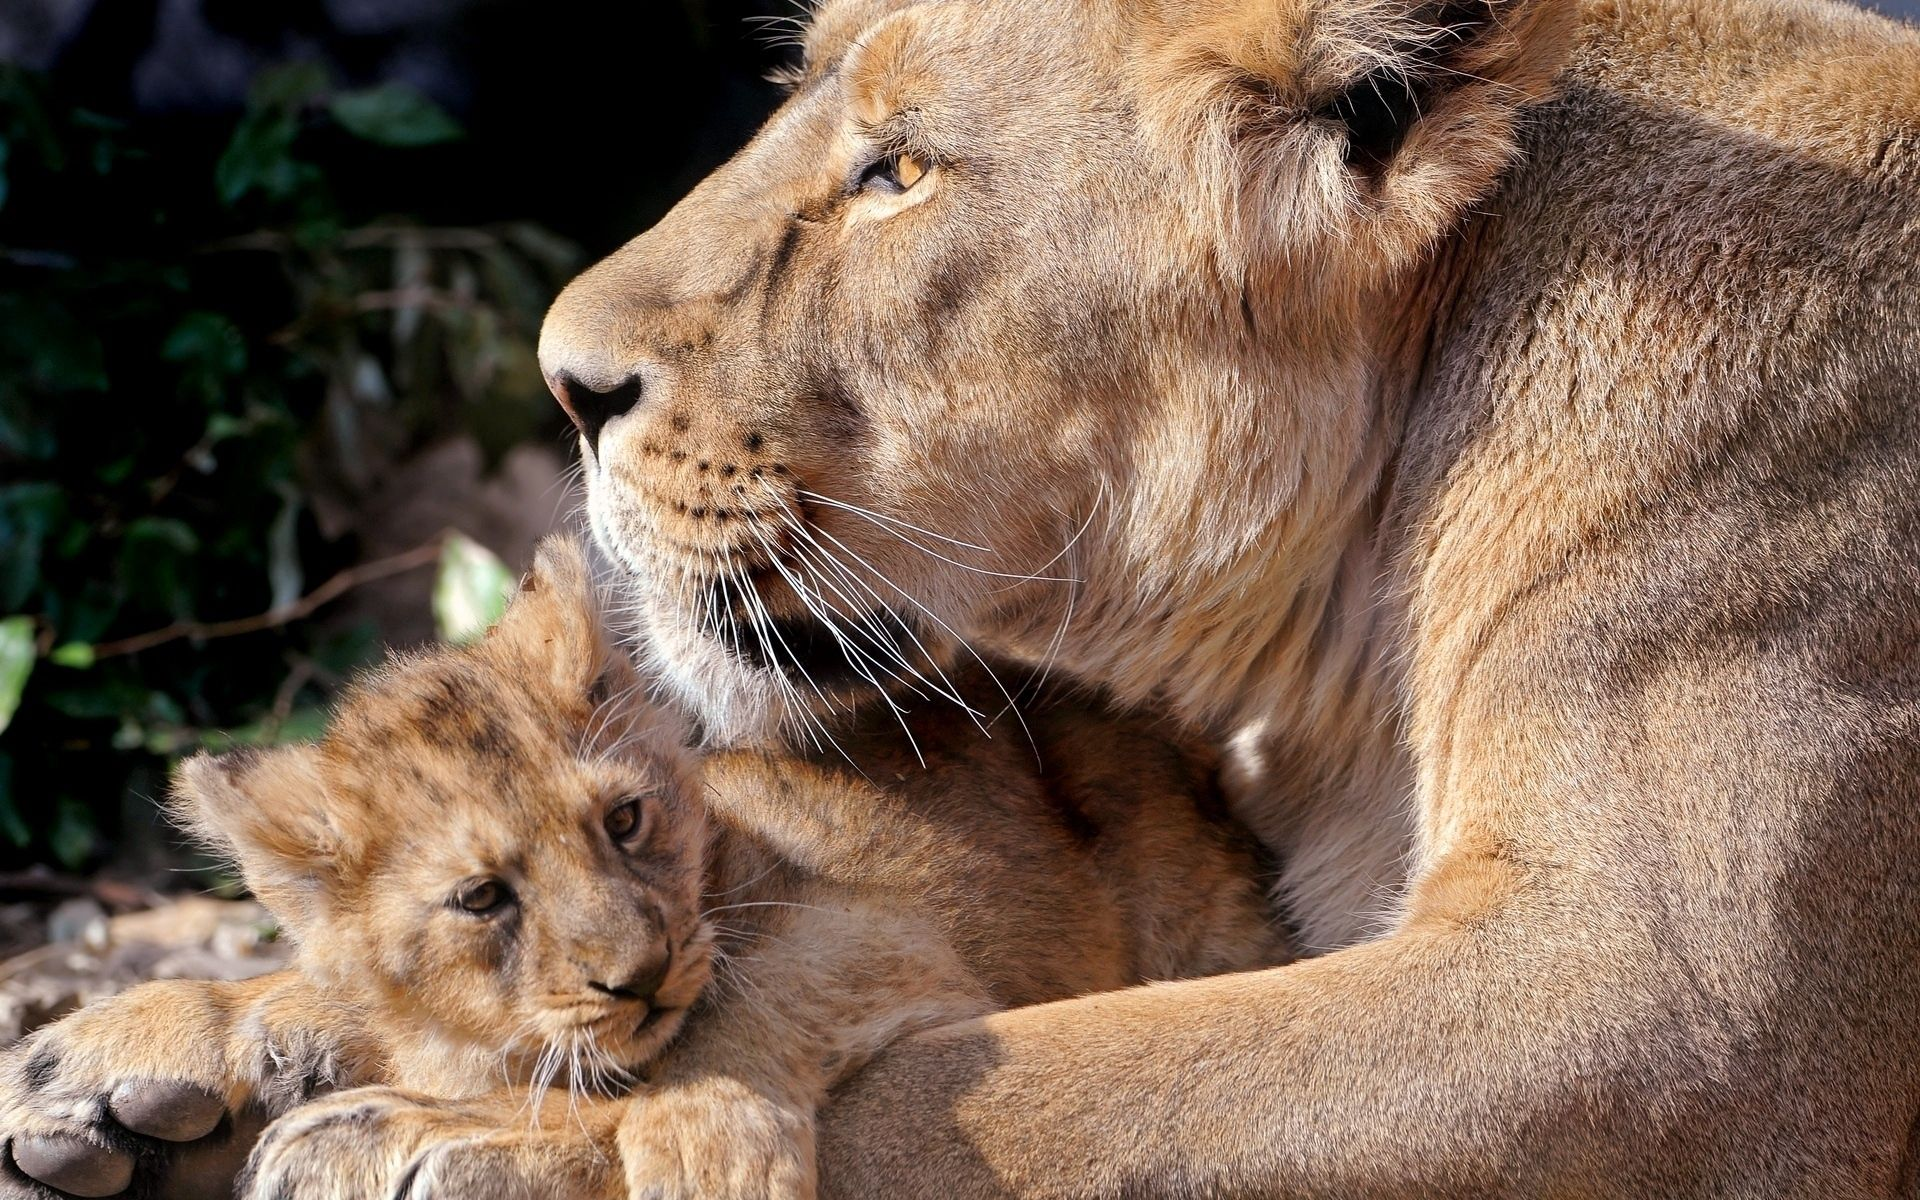 84004 download wallpaper Animals, Young, Joey, Care, Lions screensavers and pictures for free